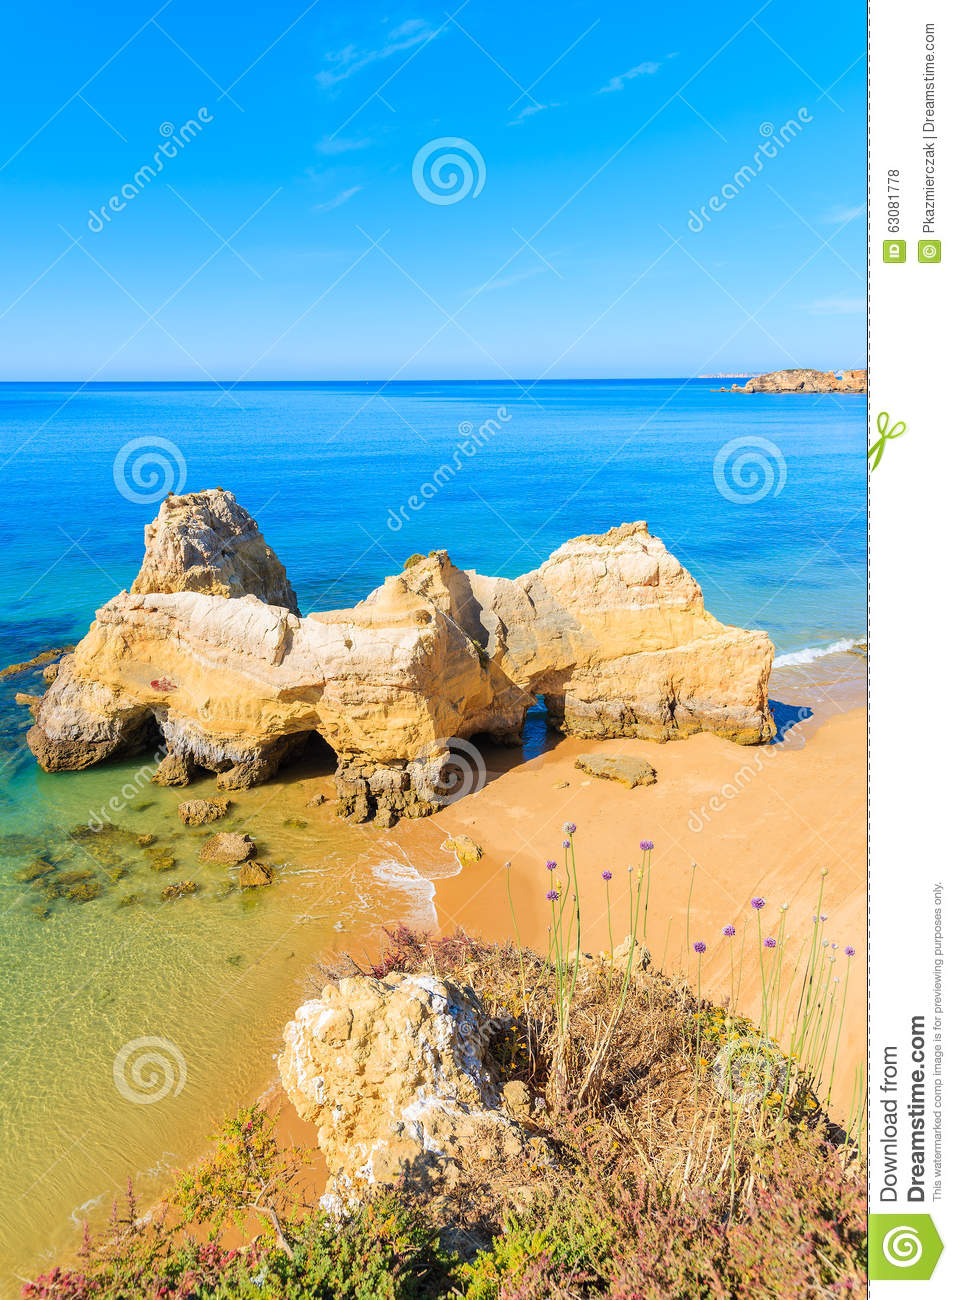 Download Une Vue D'une Plage Du DA Rocha De Praia Photo stock - Image du europe, compartiment: 63081778